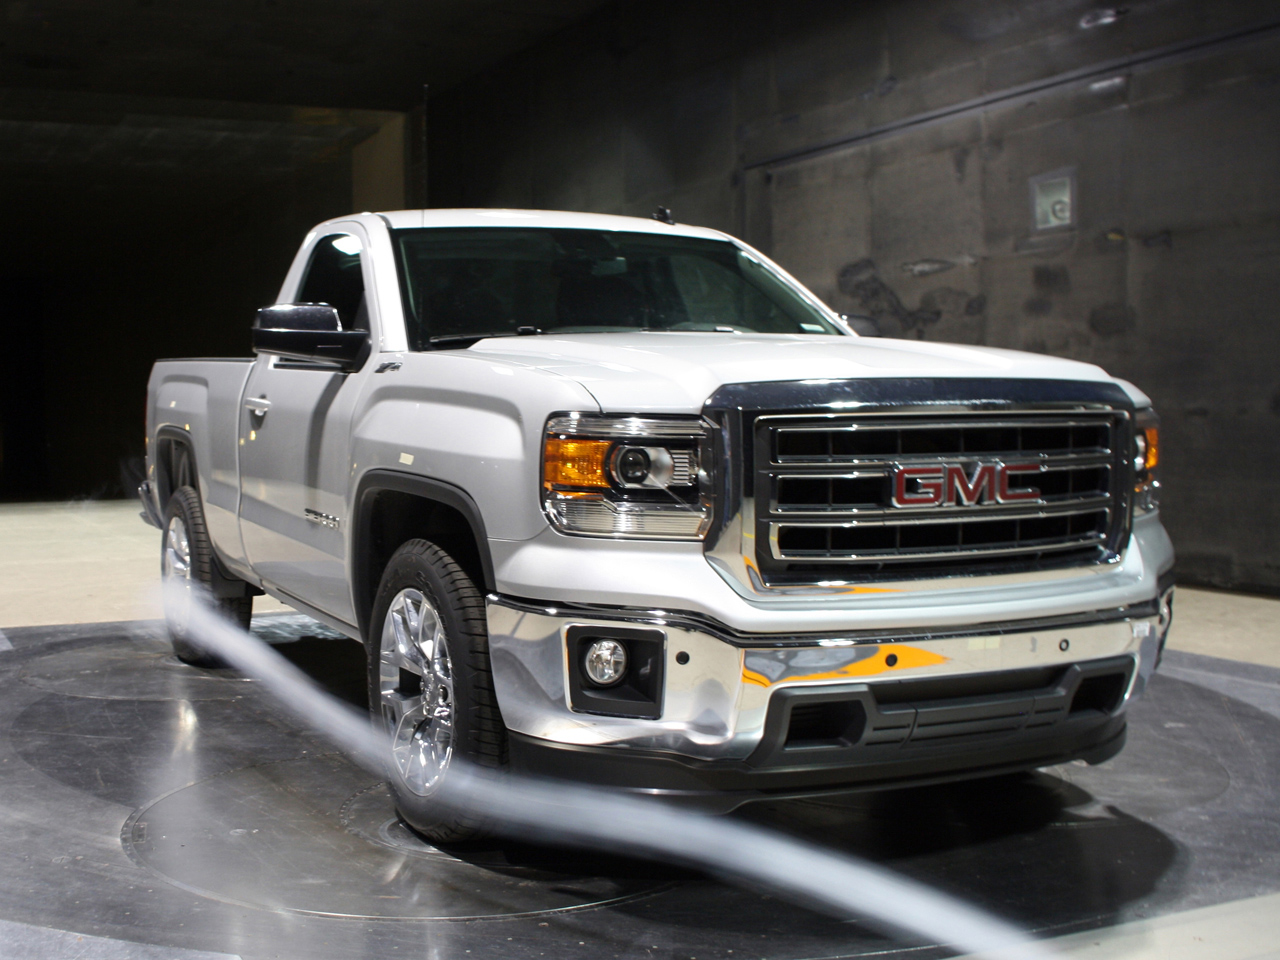 2014 gmc sierra regular cab revealed autoblog. Black Bedroom Furniture Sets. Home Design Ideas